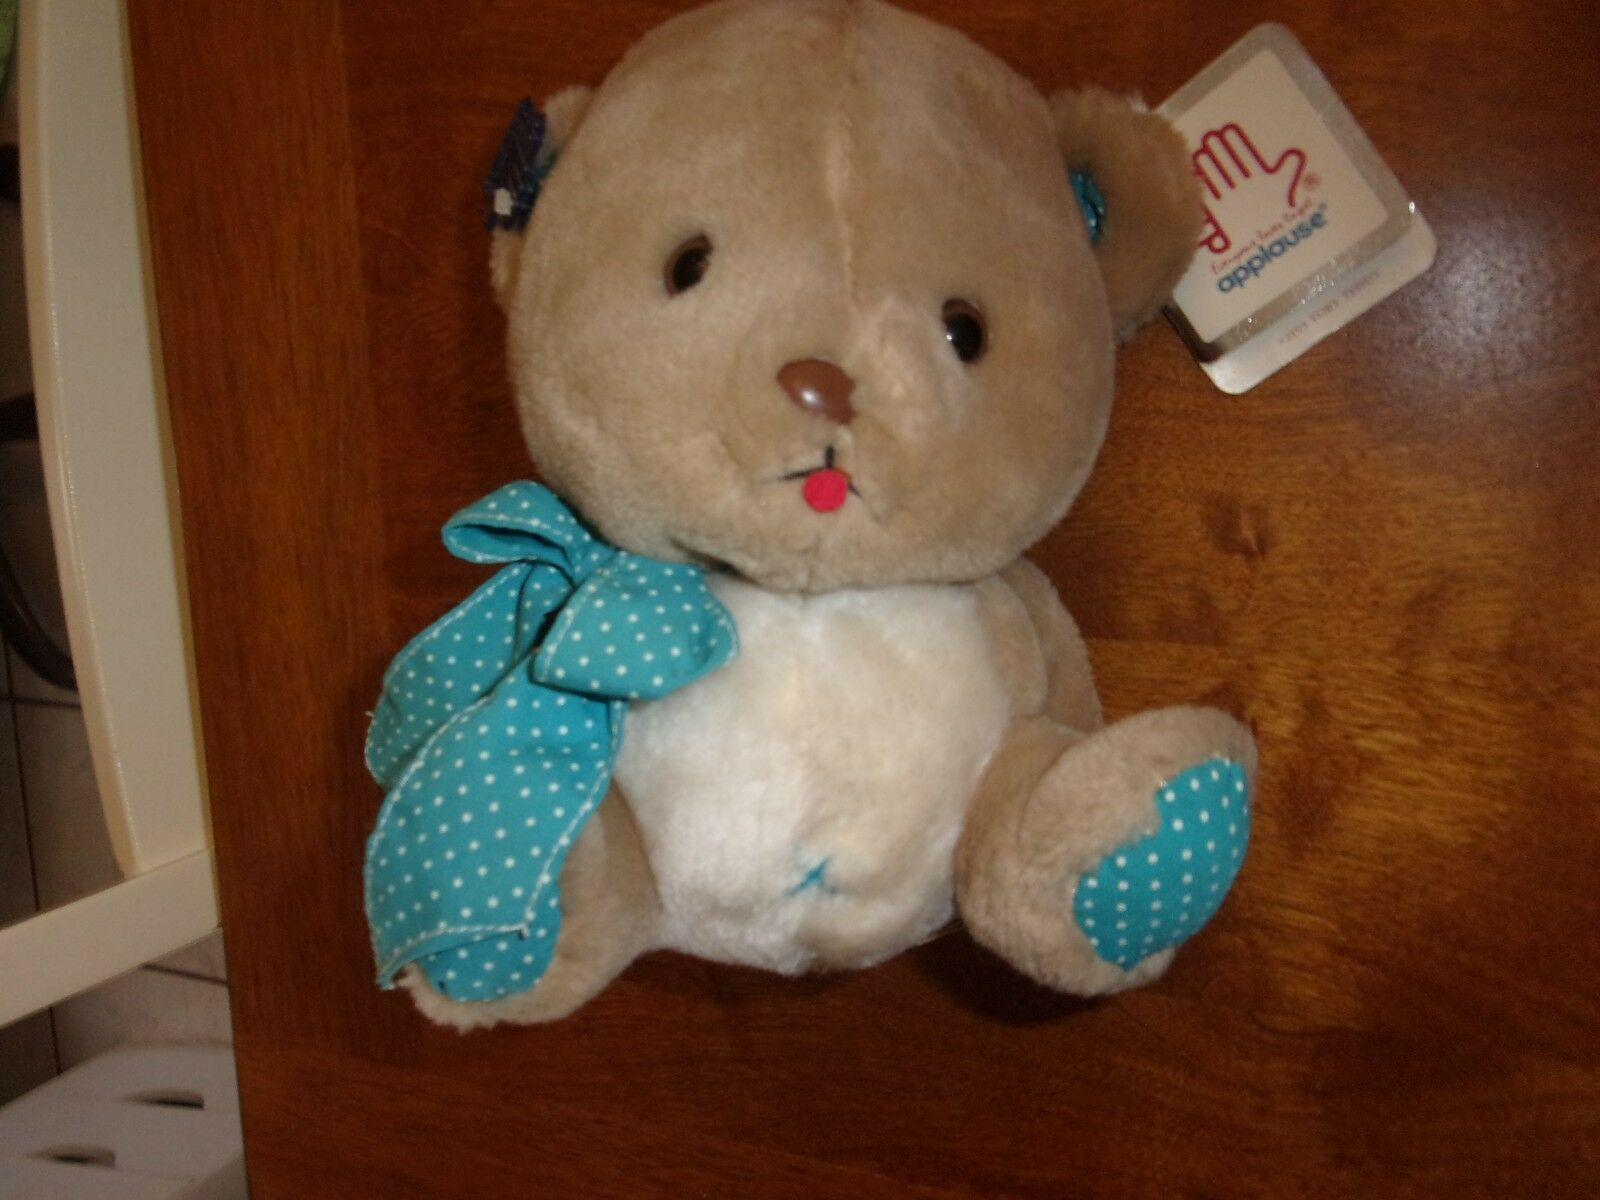 Applause Wallace Berrie Toby Teddy Bear tan bluee Polka Dot Plush Stuffed Toy 7